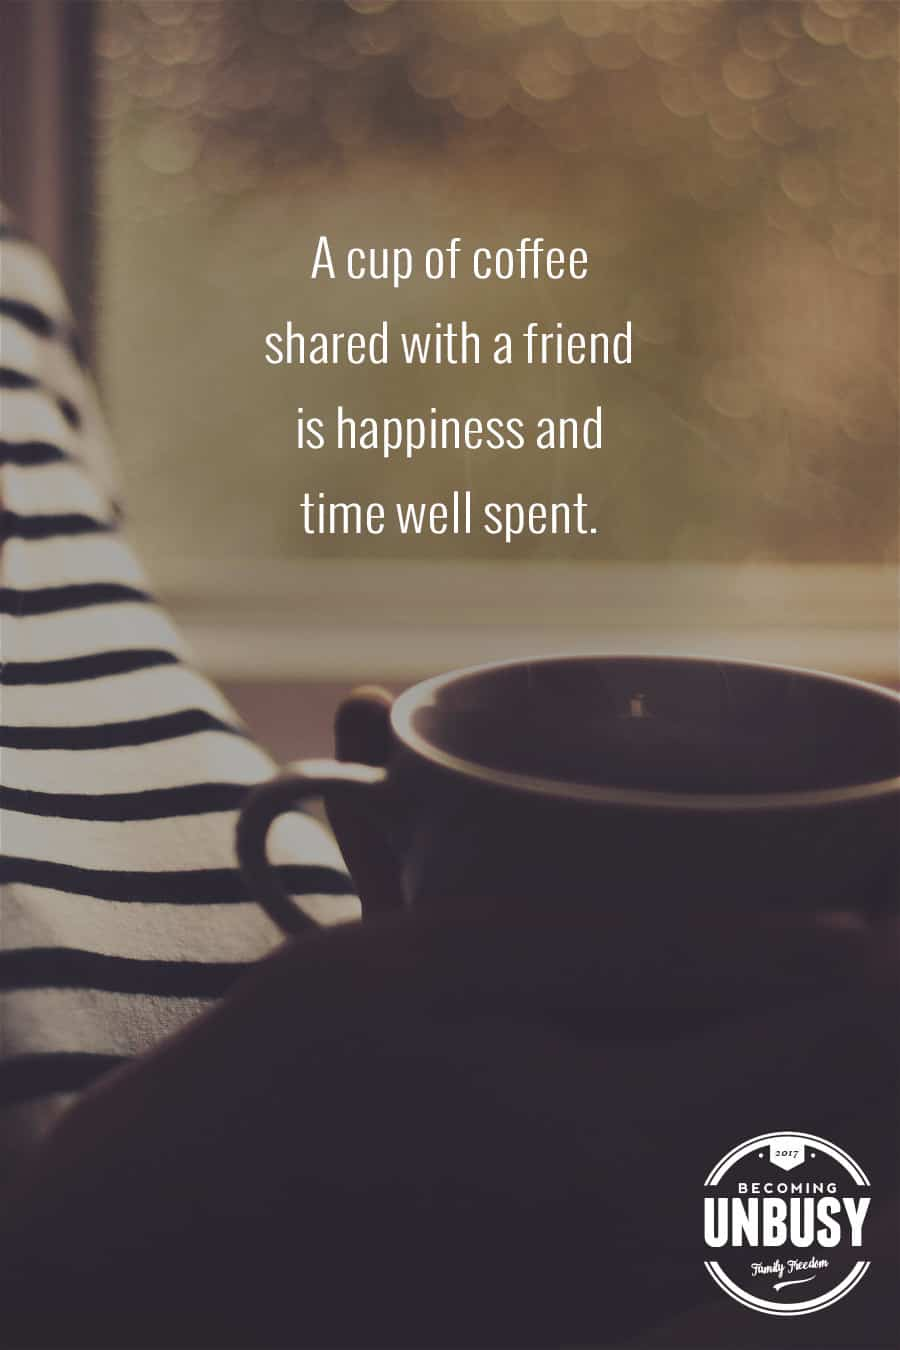 10 Good Morning Quotes - A cup of coffee shared with a friend is happiness and time well spent. #lifequotes #quotes #goodmorningquotes #coffeequotes *Start the day off right with these morning inspirational quotes. Love this good morning motivation!